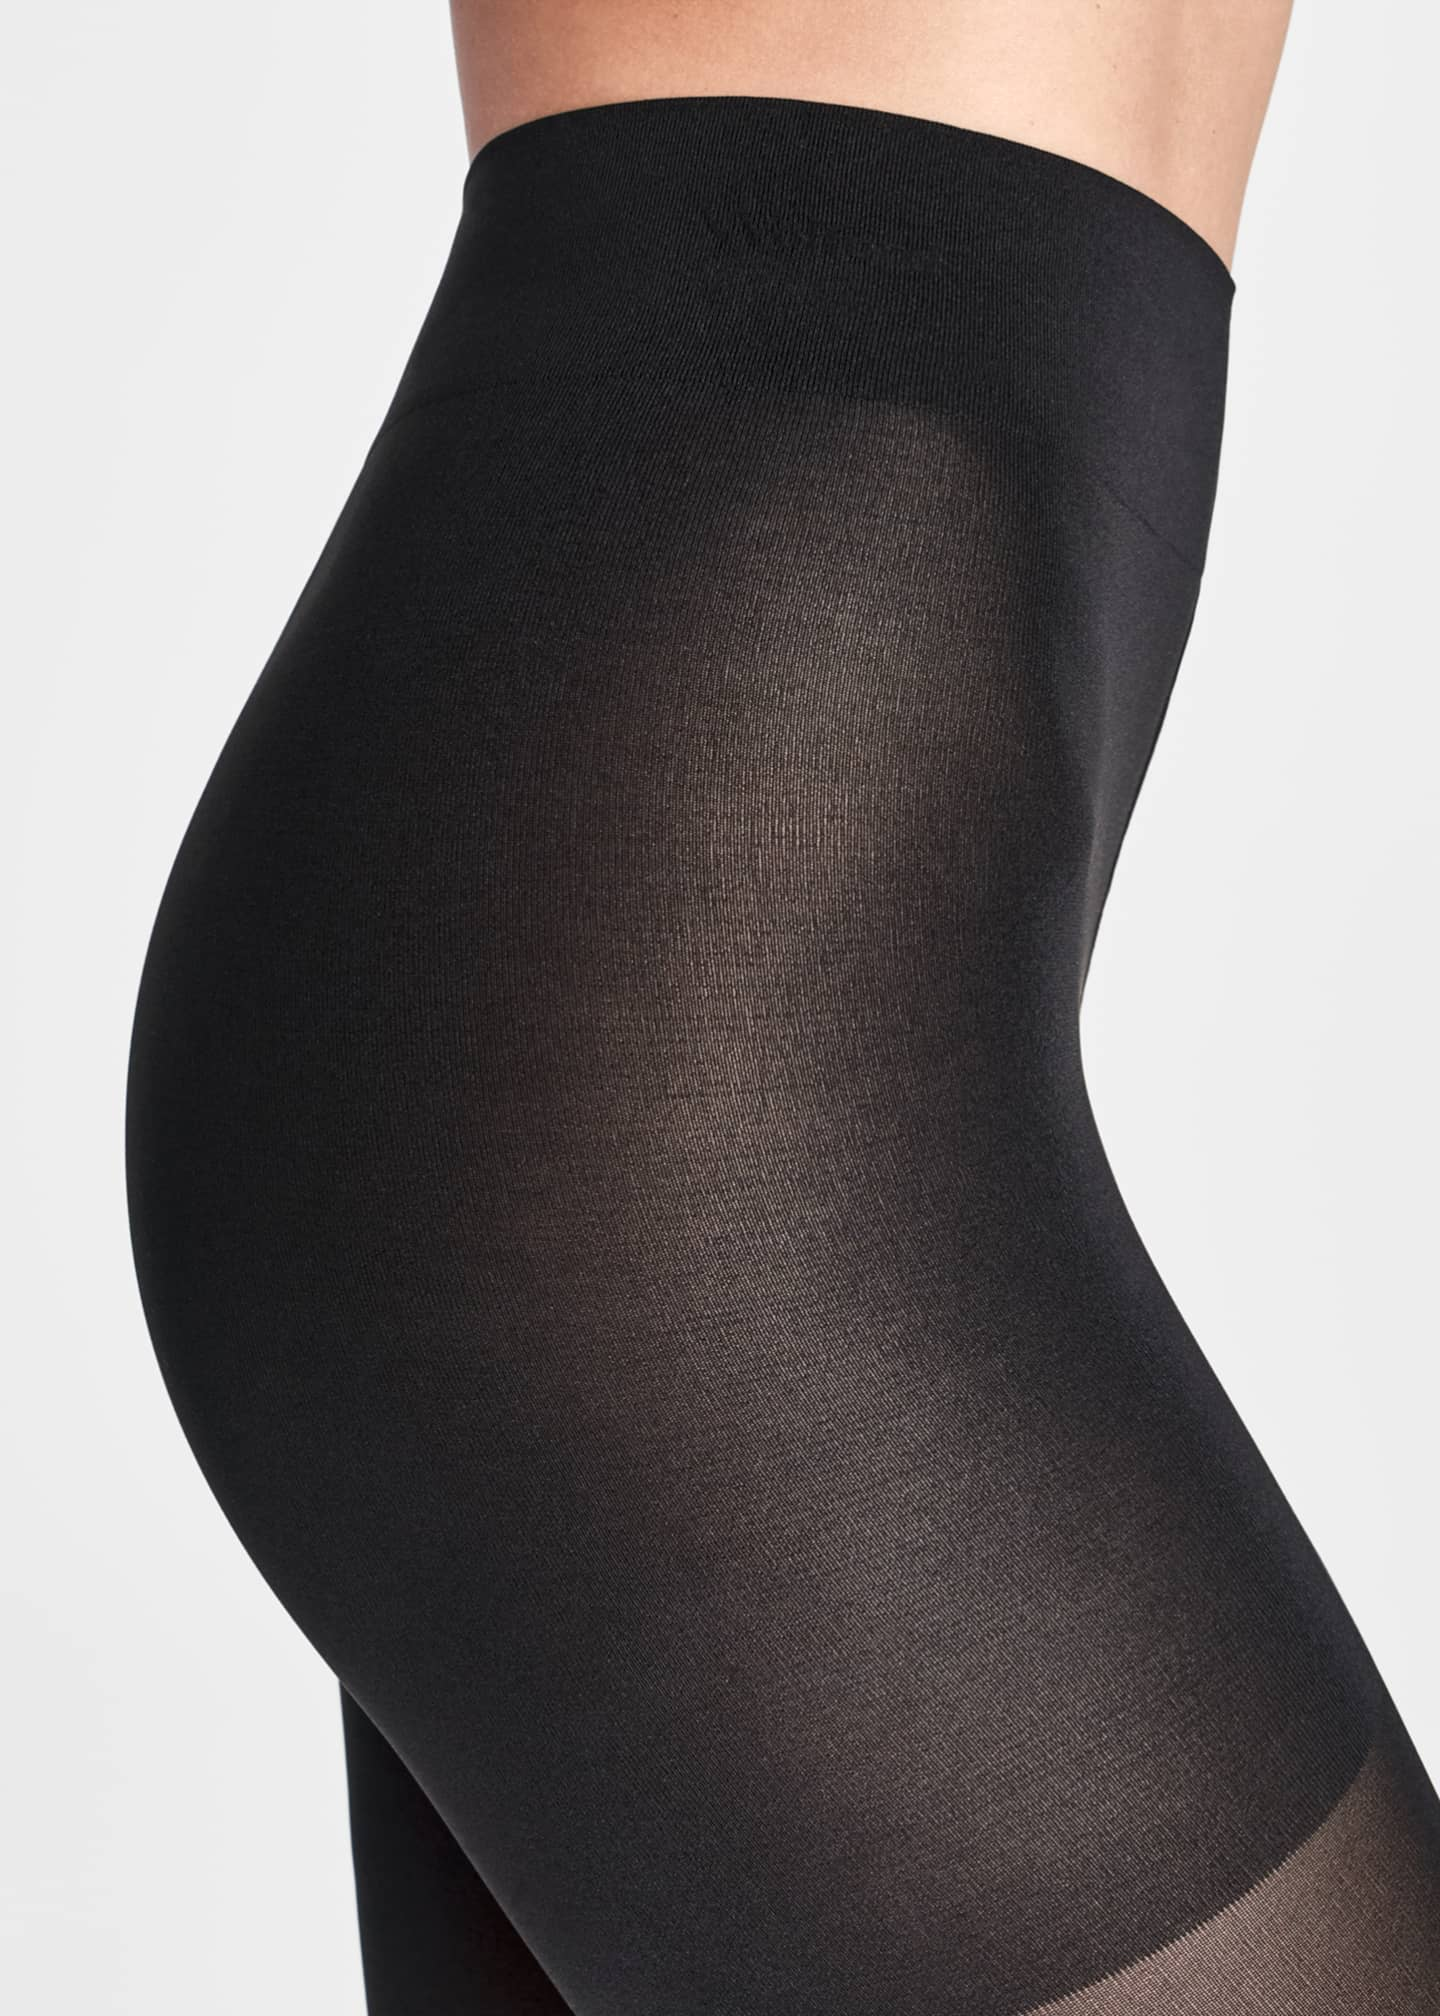 Image 2 of 3: Aurora 70 Tights